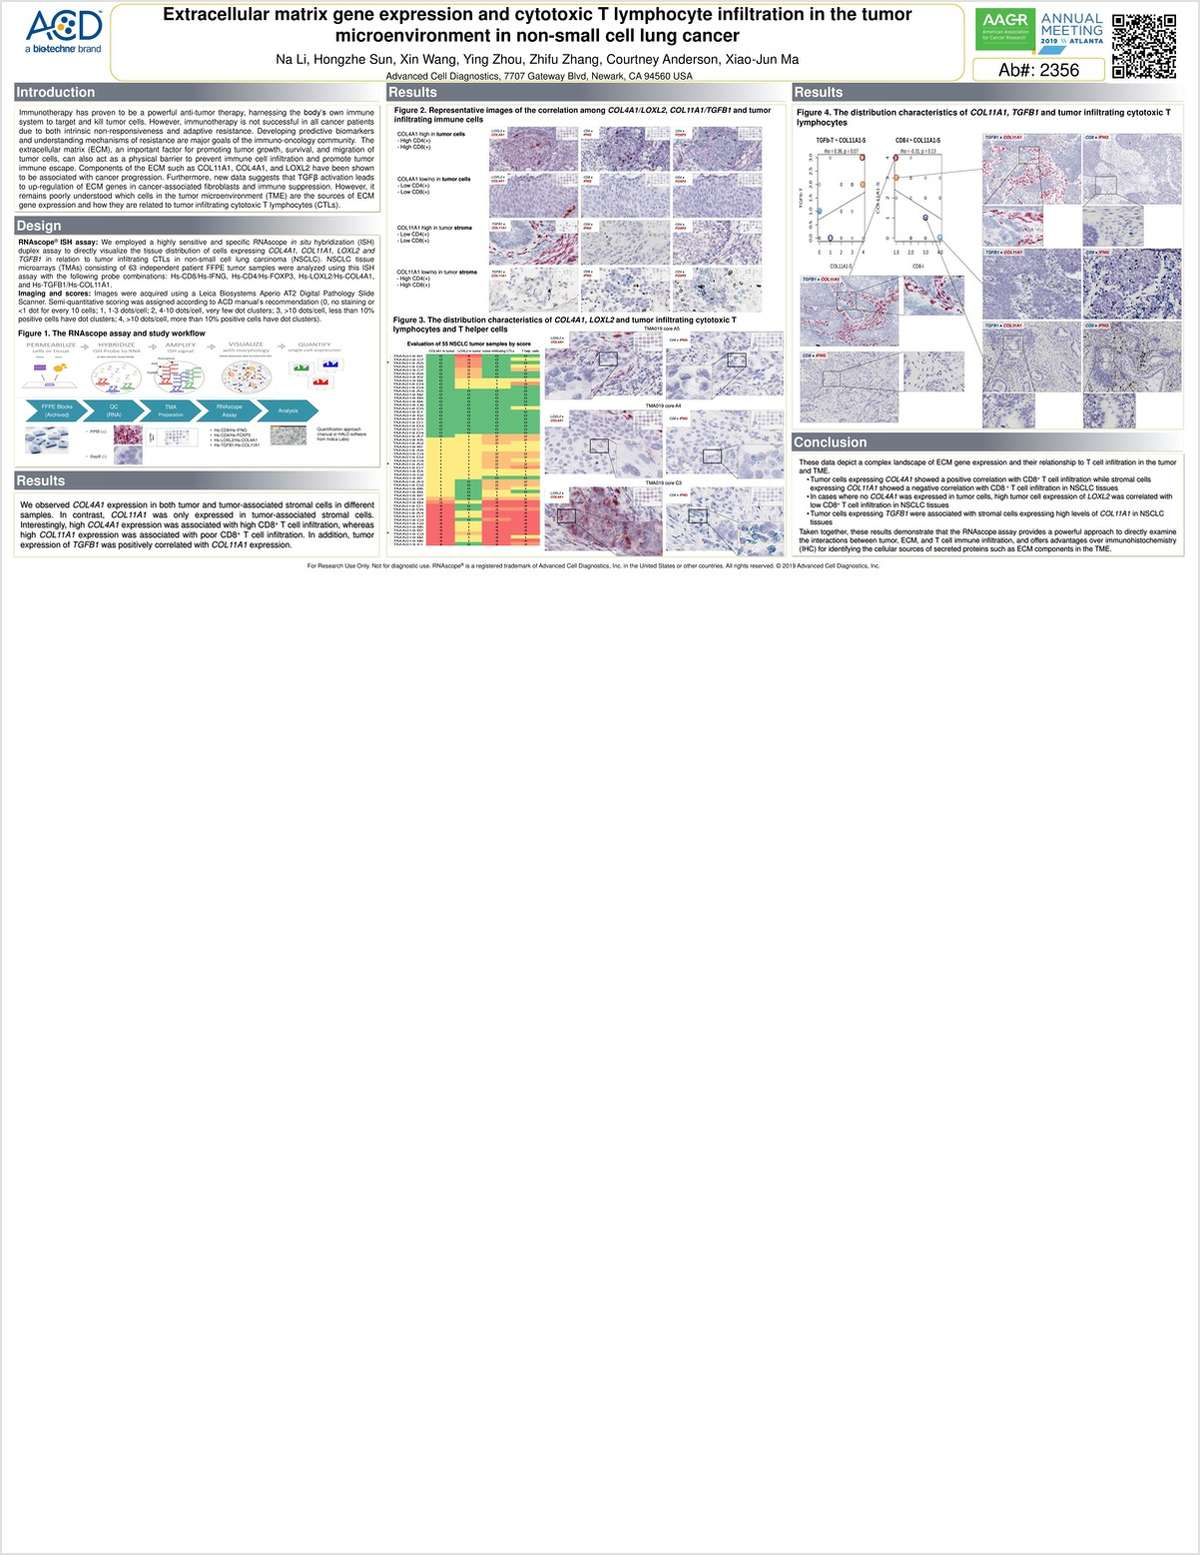 Extracellular Matrix Gene Expression and Cytotoxic T Lymphocyte Infiltration in the Tumor Microenvironment in Non-Small Cell Lung Cancer